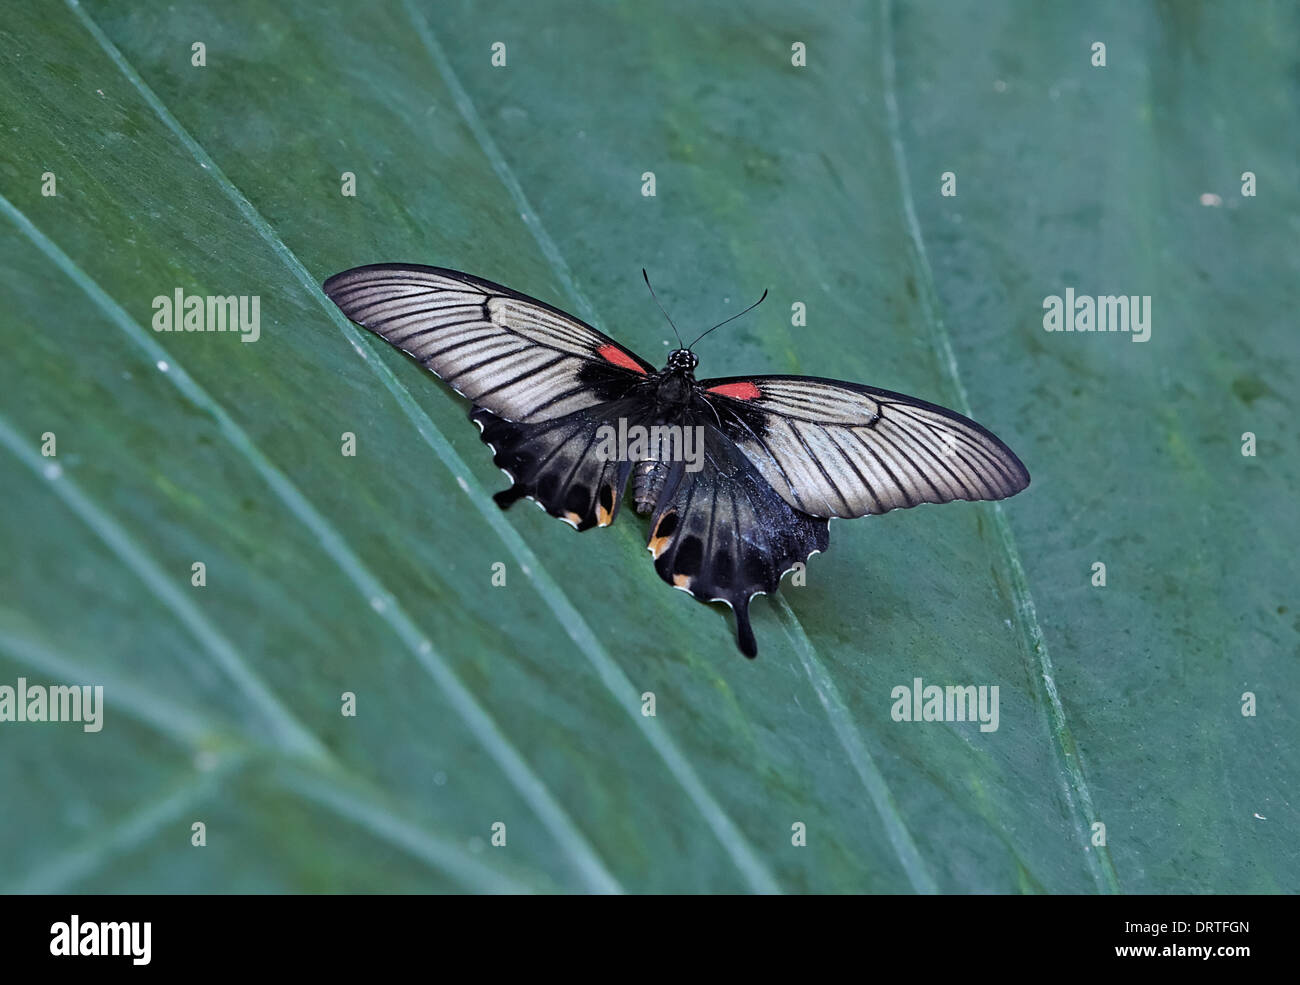 Asian Swallowtail or Great Yellow Mormon butterfly Papilio lowi from the Papilionidae family Dorsal or open view - Stock Image